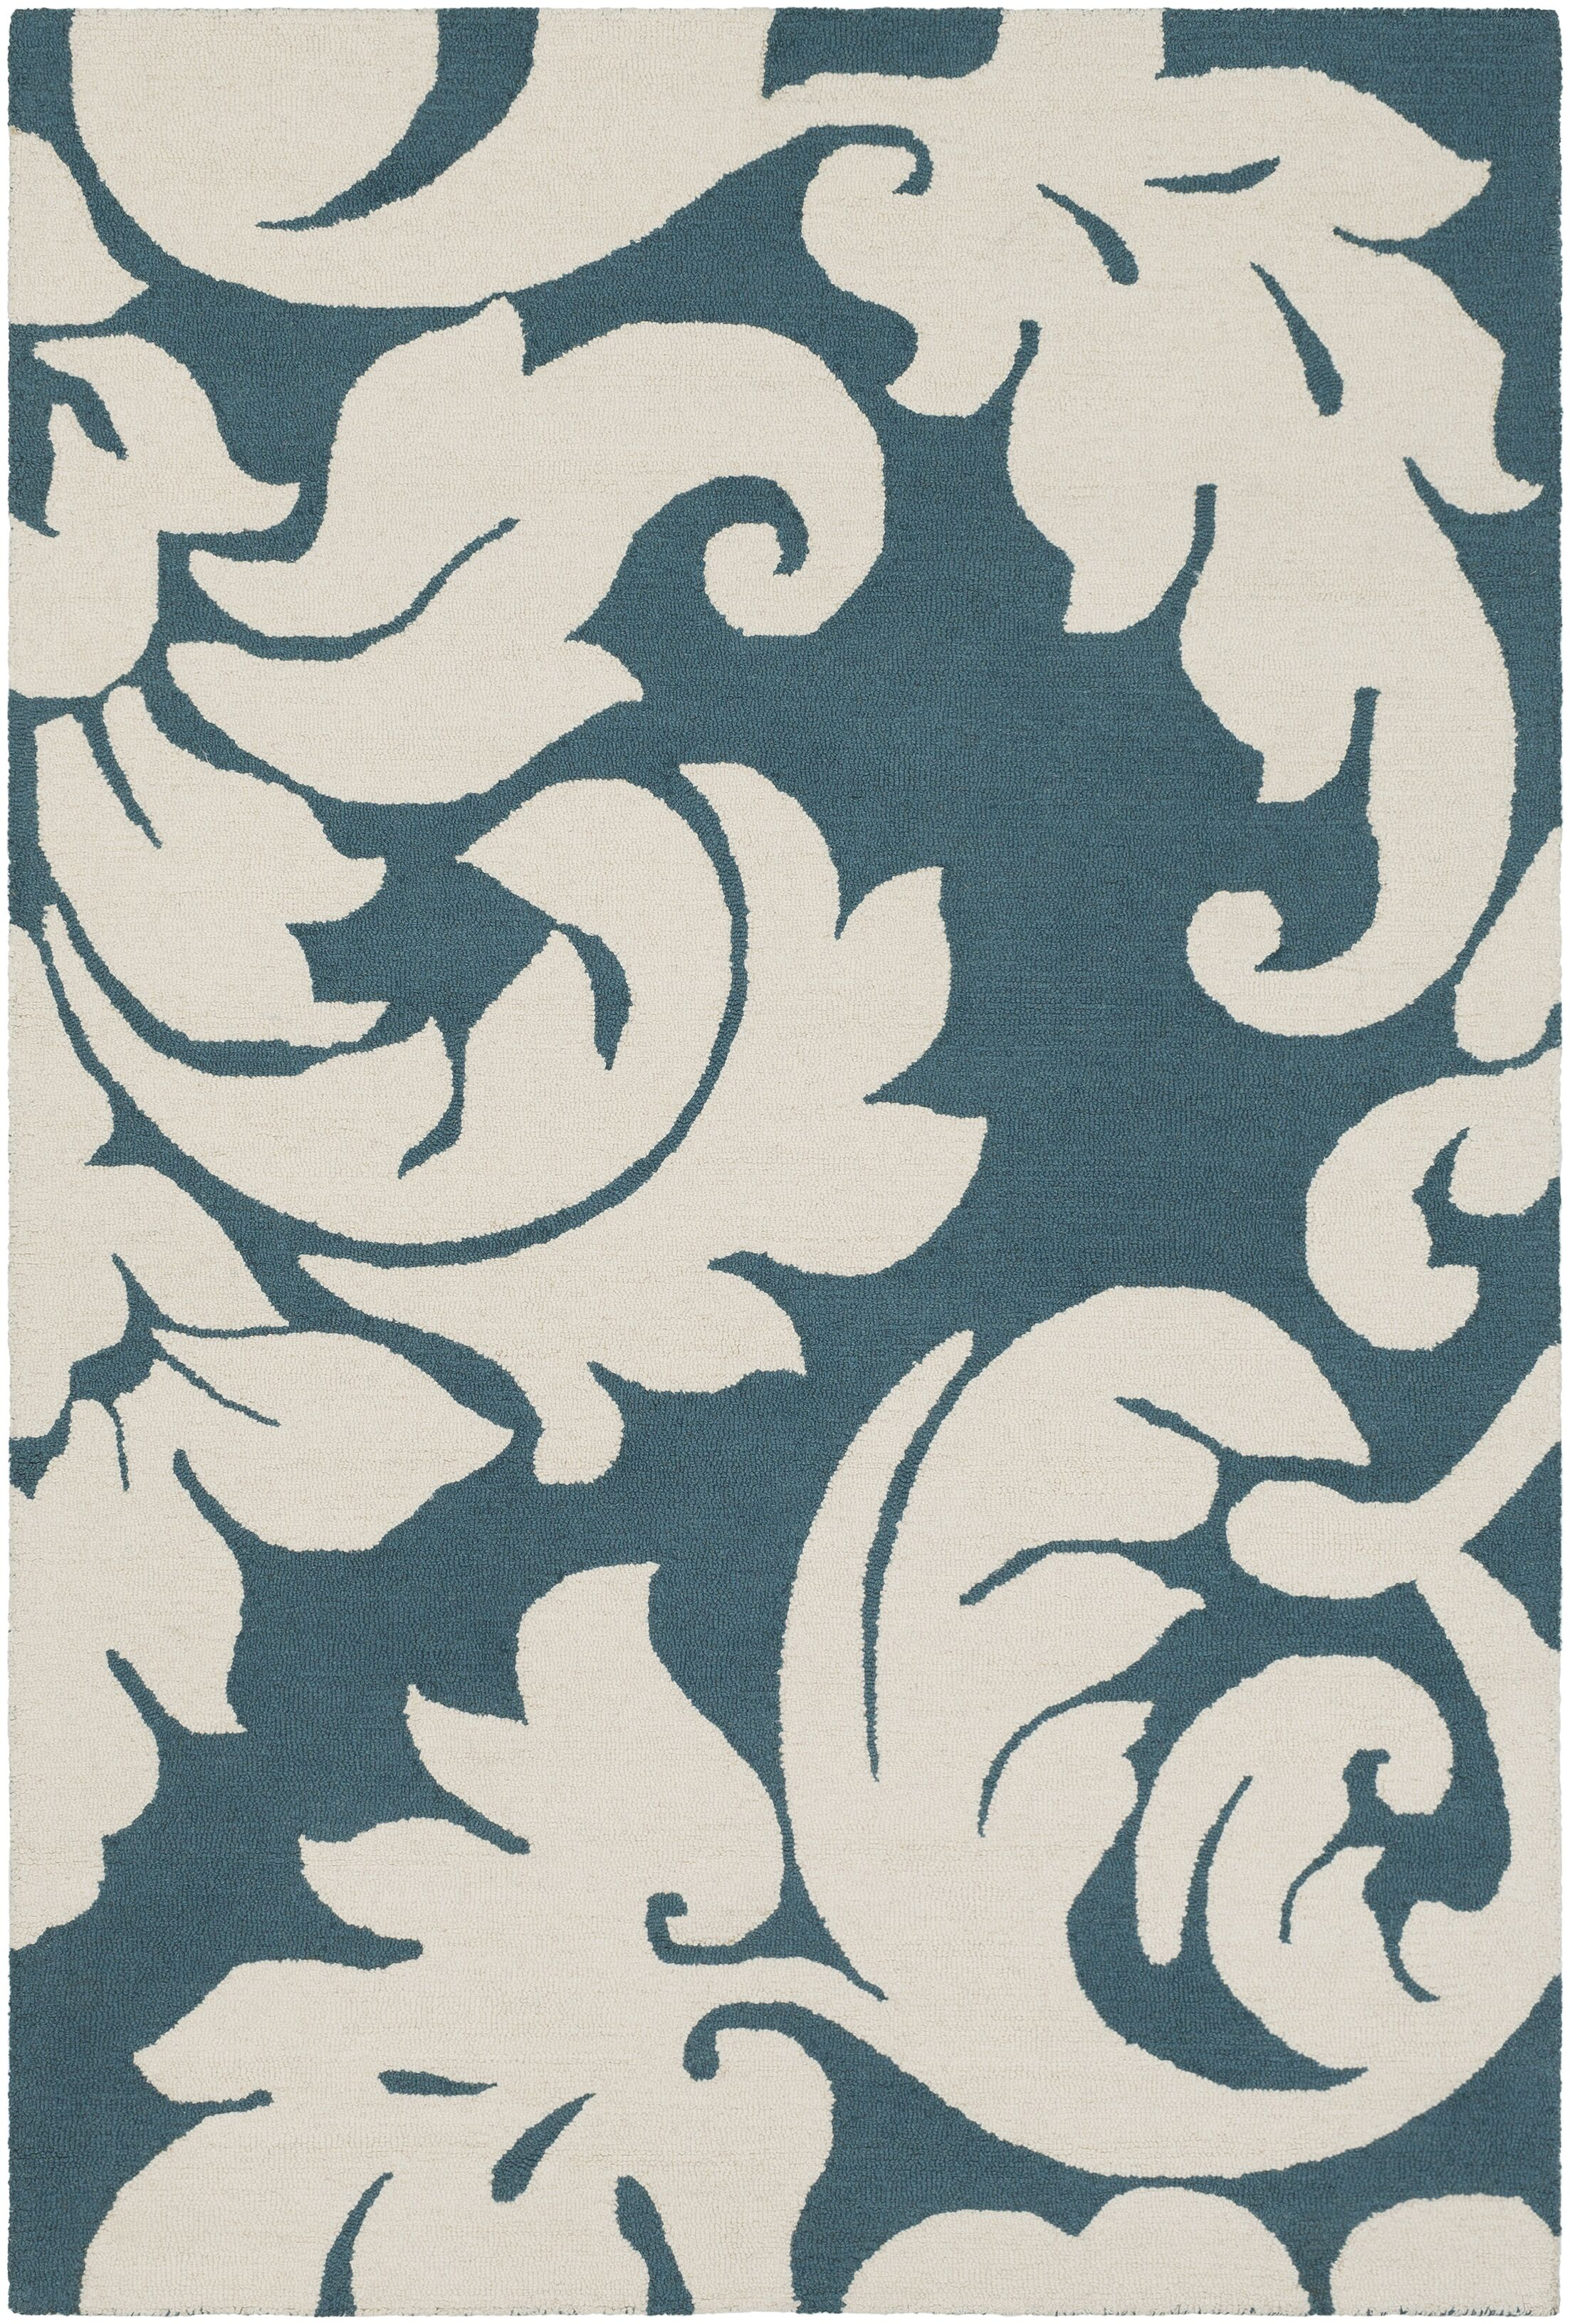 Lachance Hand-Tufted Teal Area Rug Rug Size: Rectangle 9' x 13'